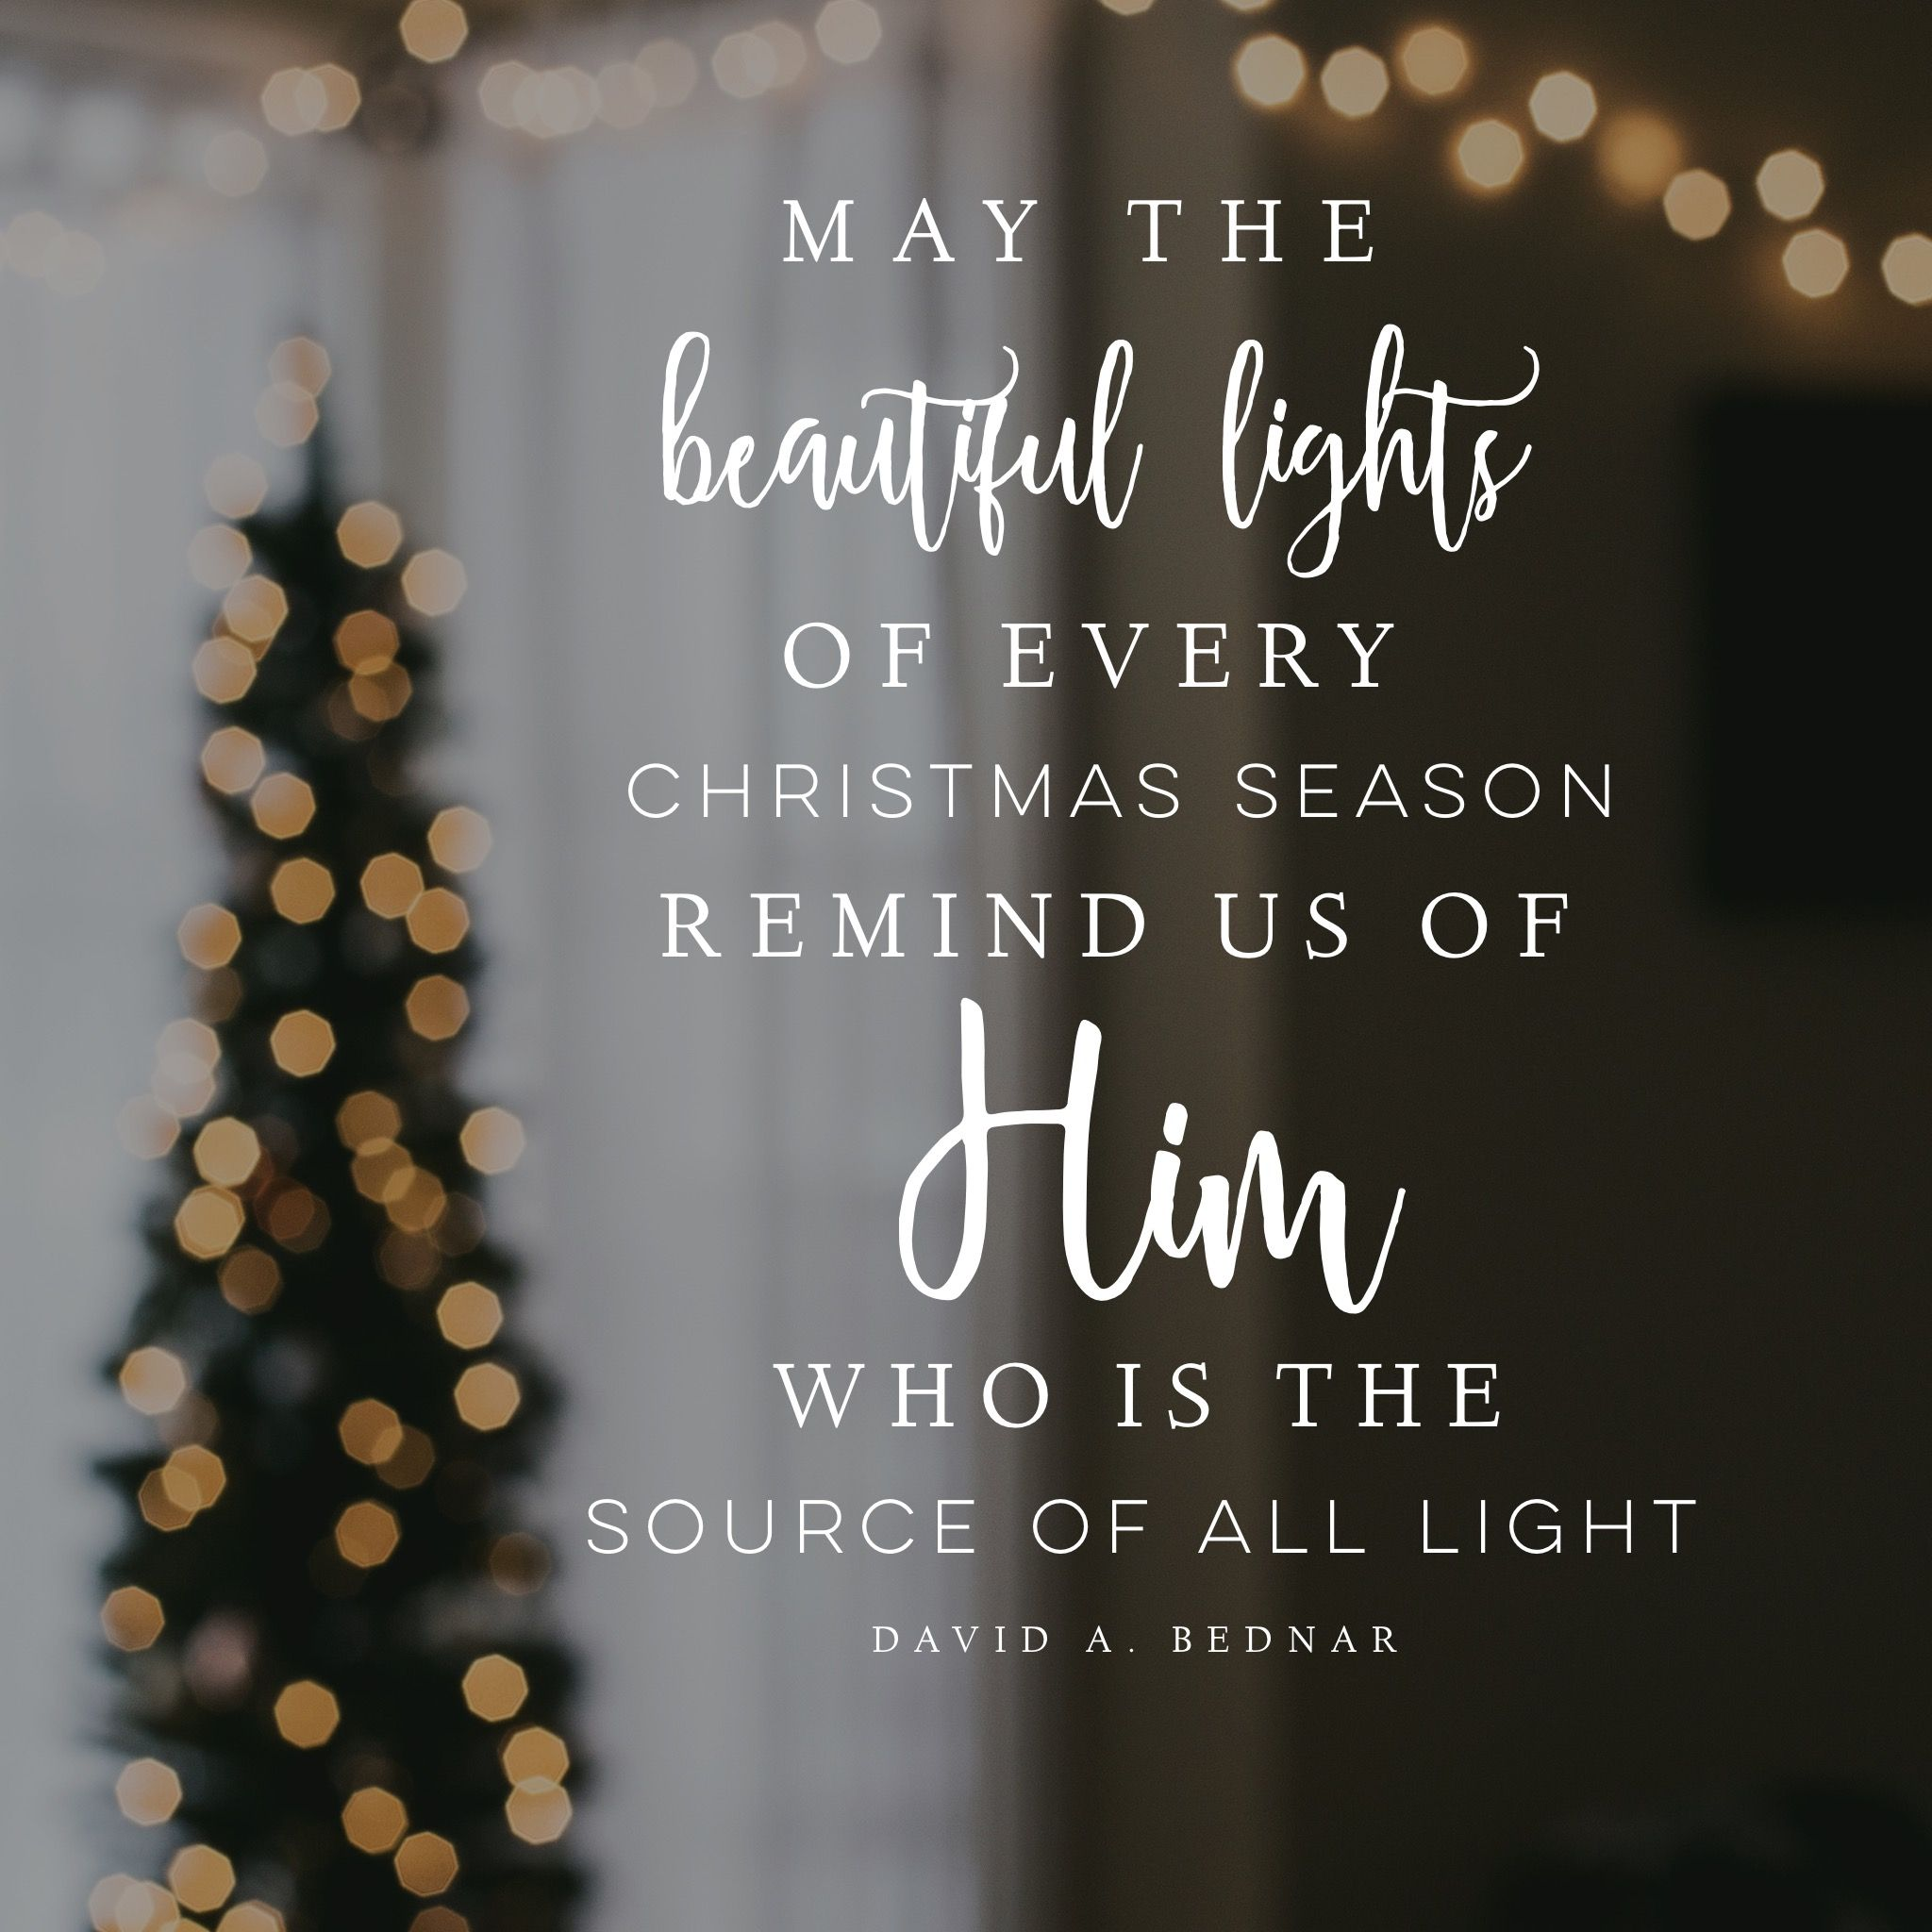 may the beautiful lights of every christmas season remind us of him who is the source of all light david a bednar lds quotes lds mormon christian